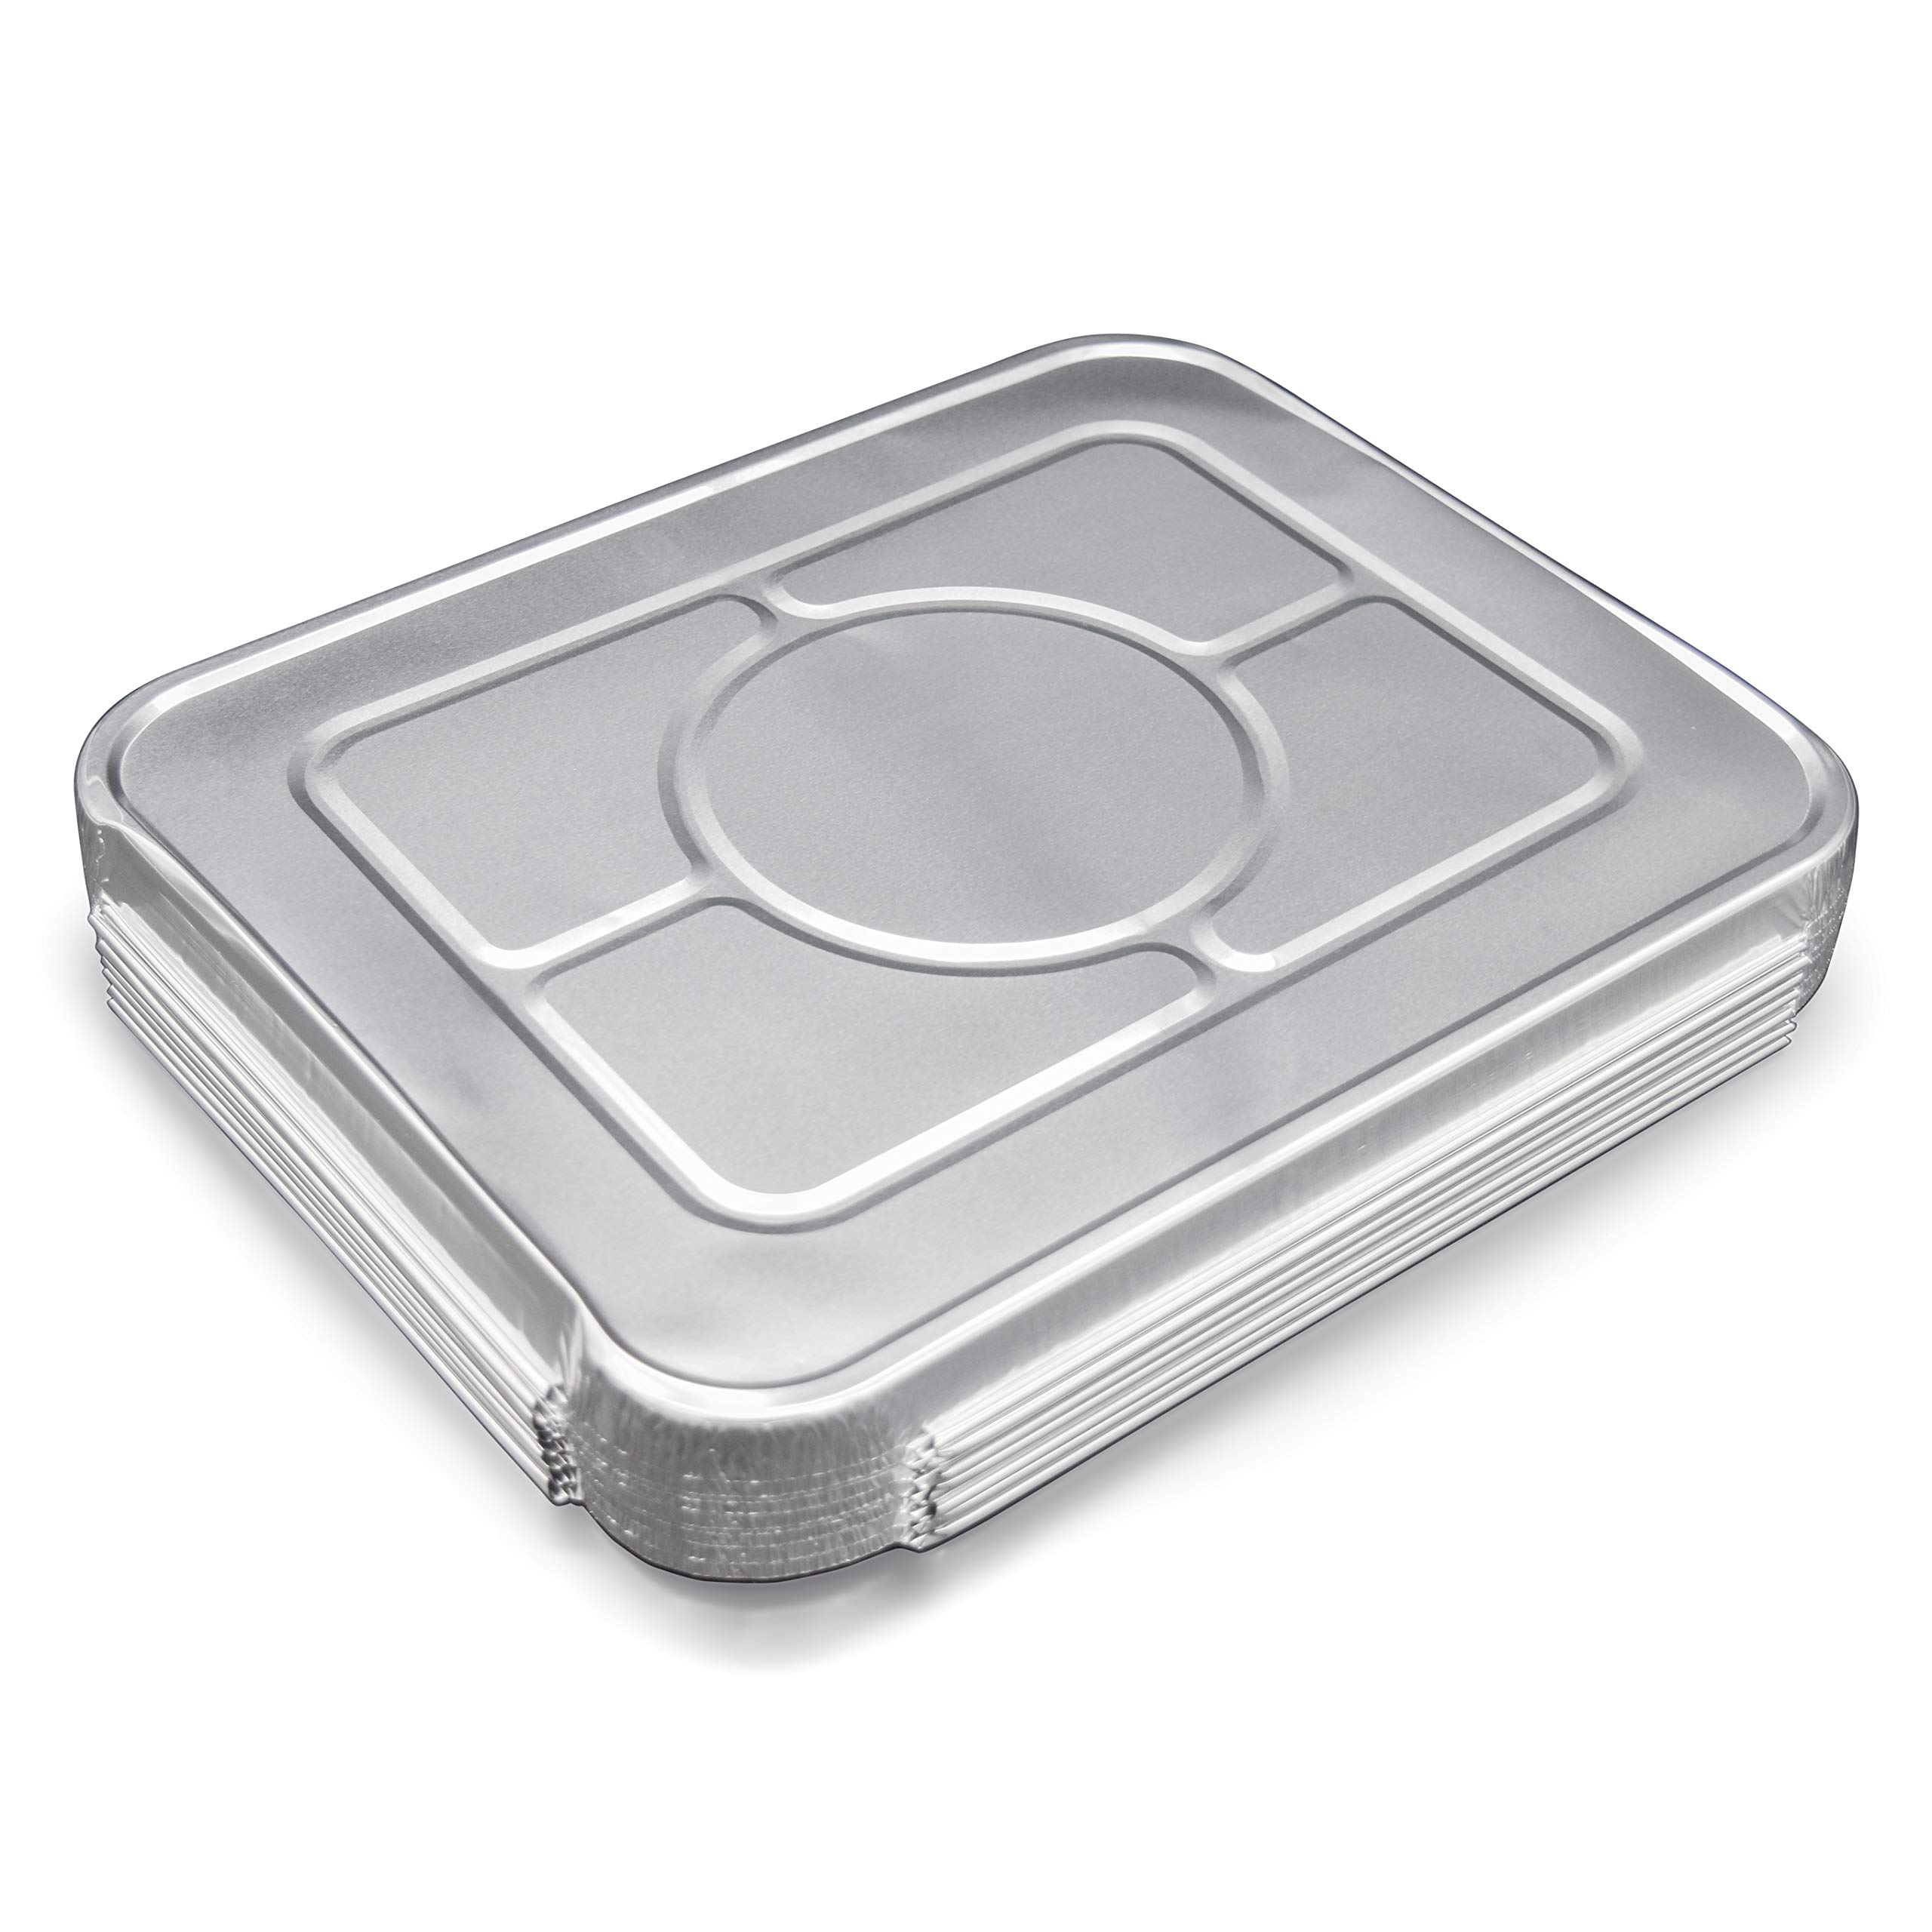 (40 Pack) Premium Lids for Chafing Pans 9'' x 13'' Half Deep Pans l Top Choice Disposable Aluminum Foil Tin Pan Lid Perfect for Roasting Potluck Catering Party BBQ Baking Cakes Pies